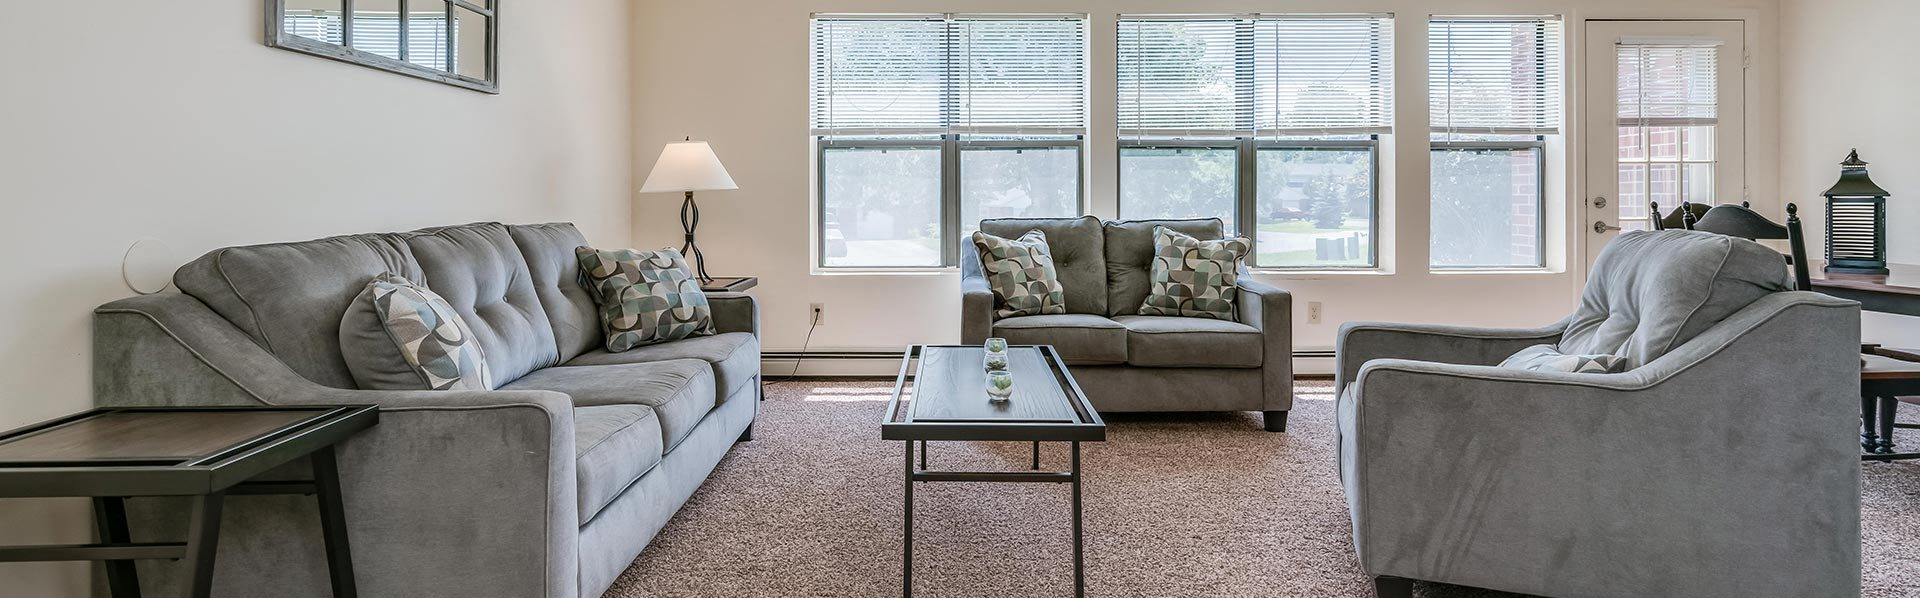 Parkstead Watertown at City Center living room image